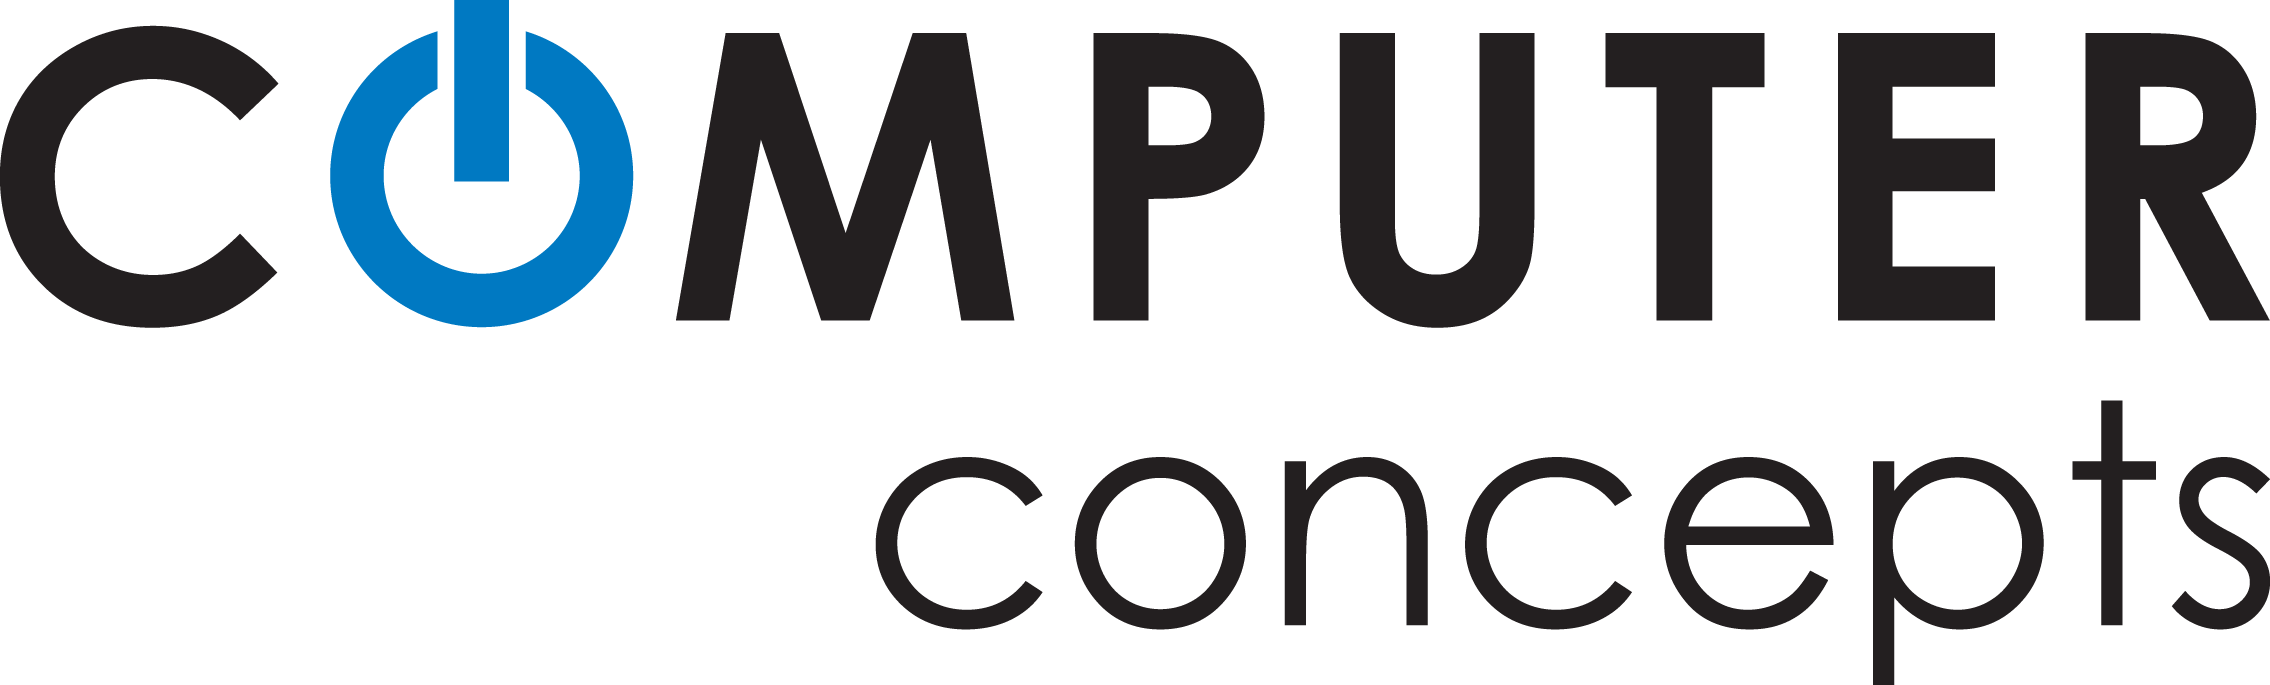 Computer Education Logo Png | www.imgkid.com - The Image ...